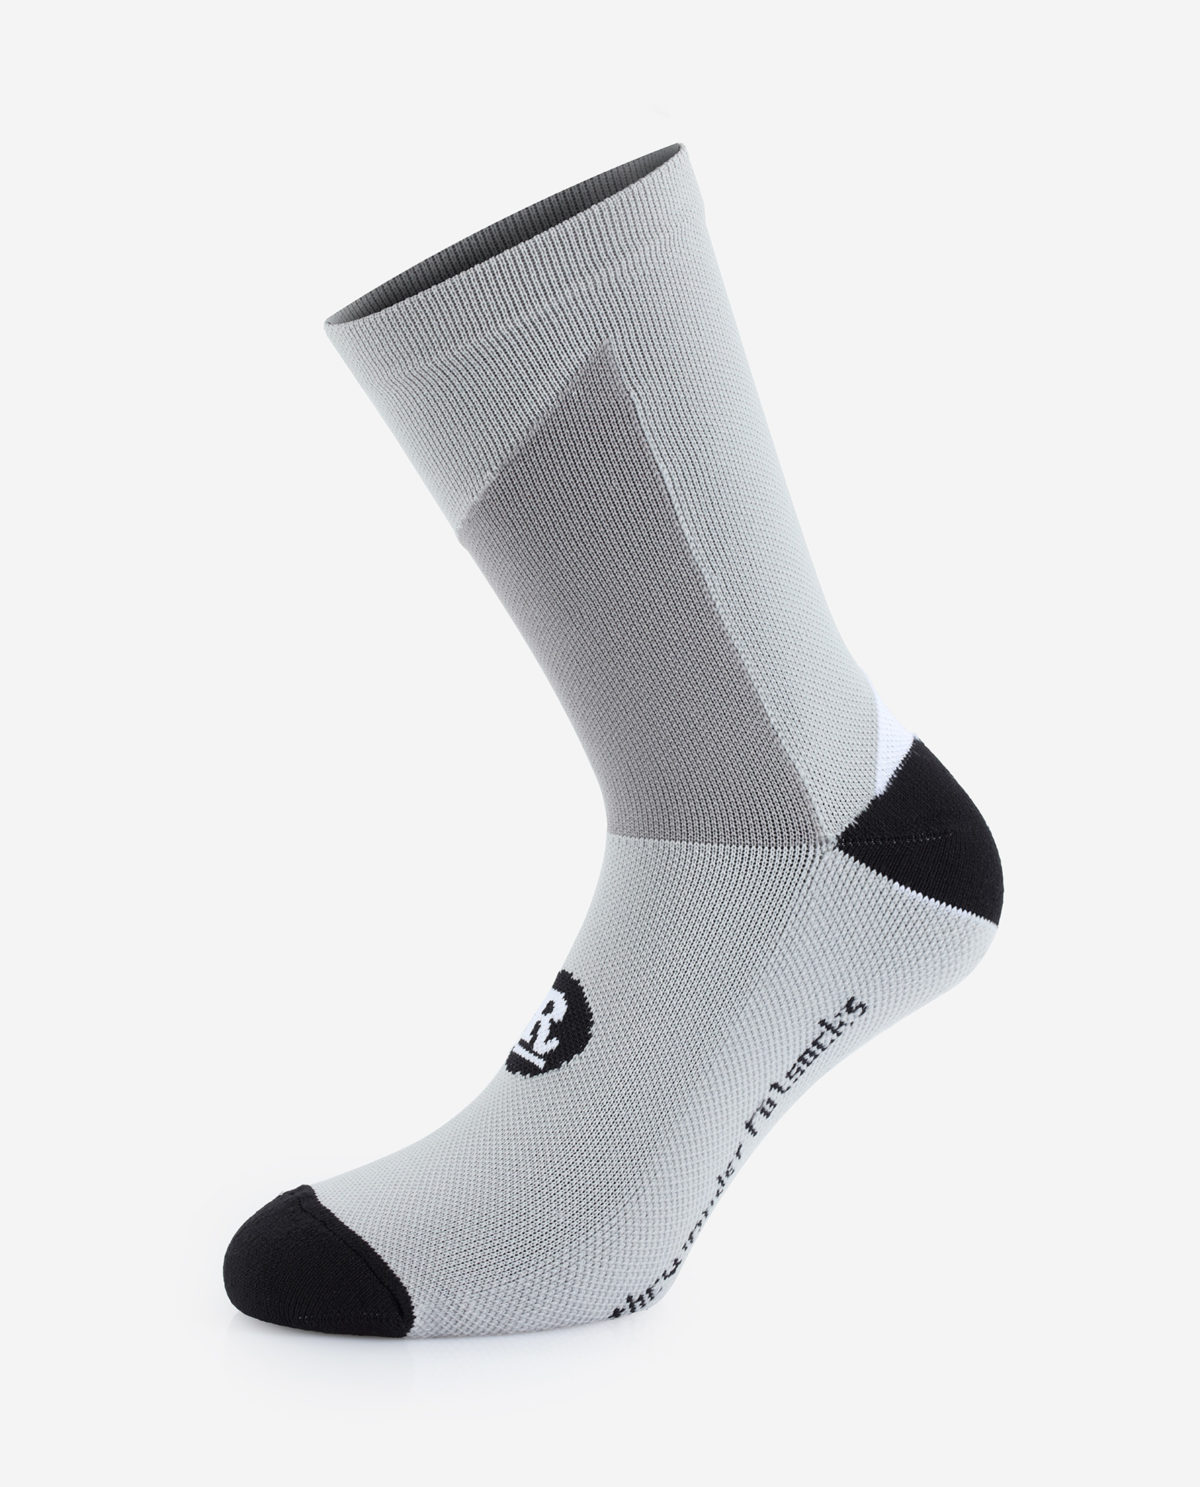 the wonderful socks Gavia winter Rouleur LTD